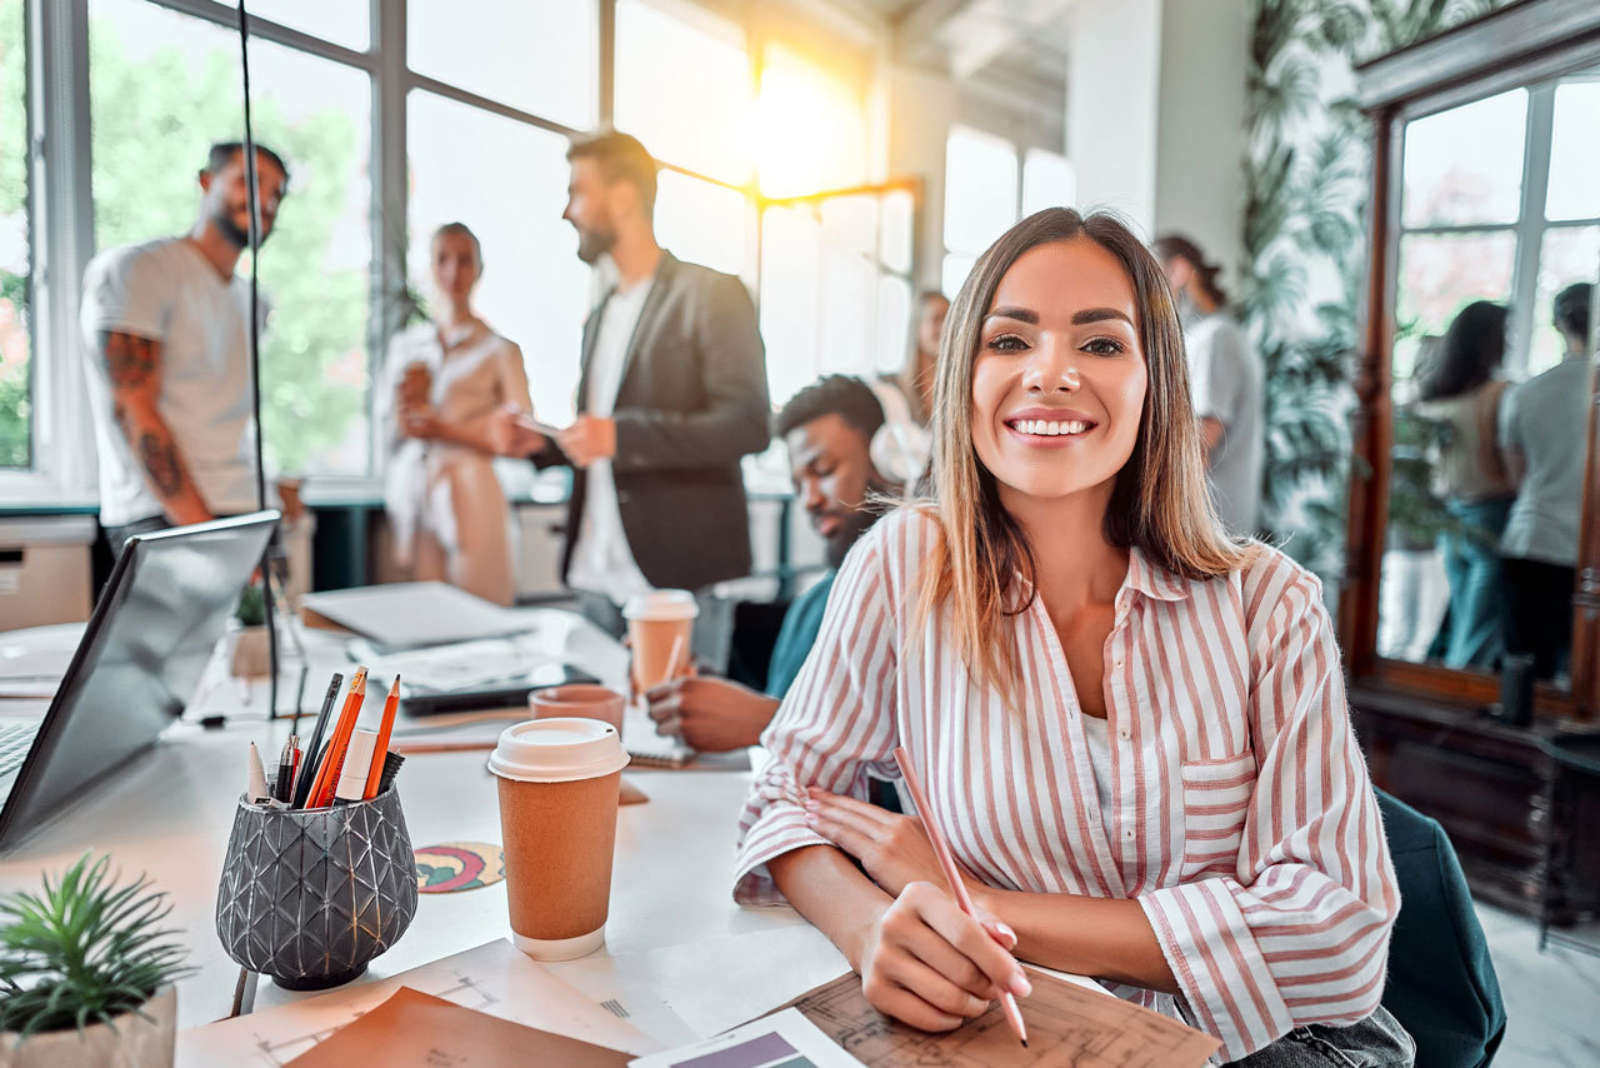 Confident woman sitting in coworking space office setting